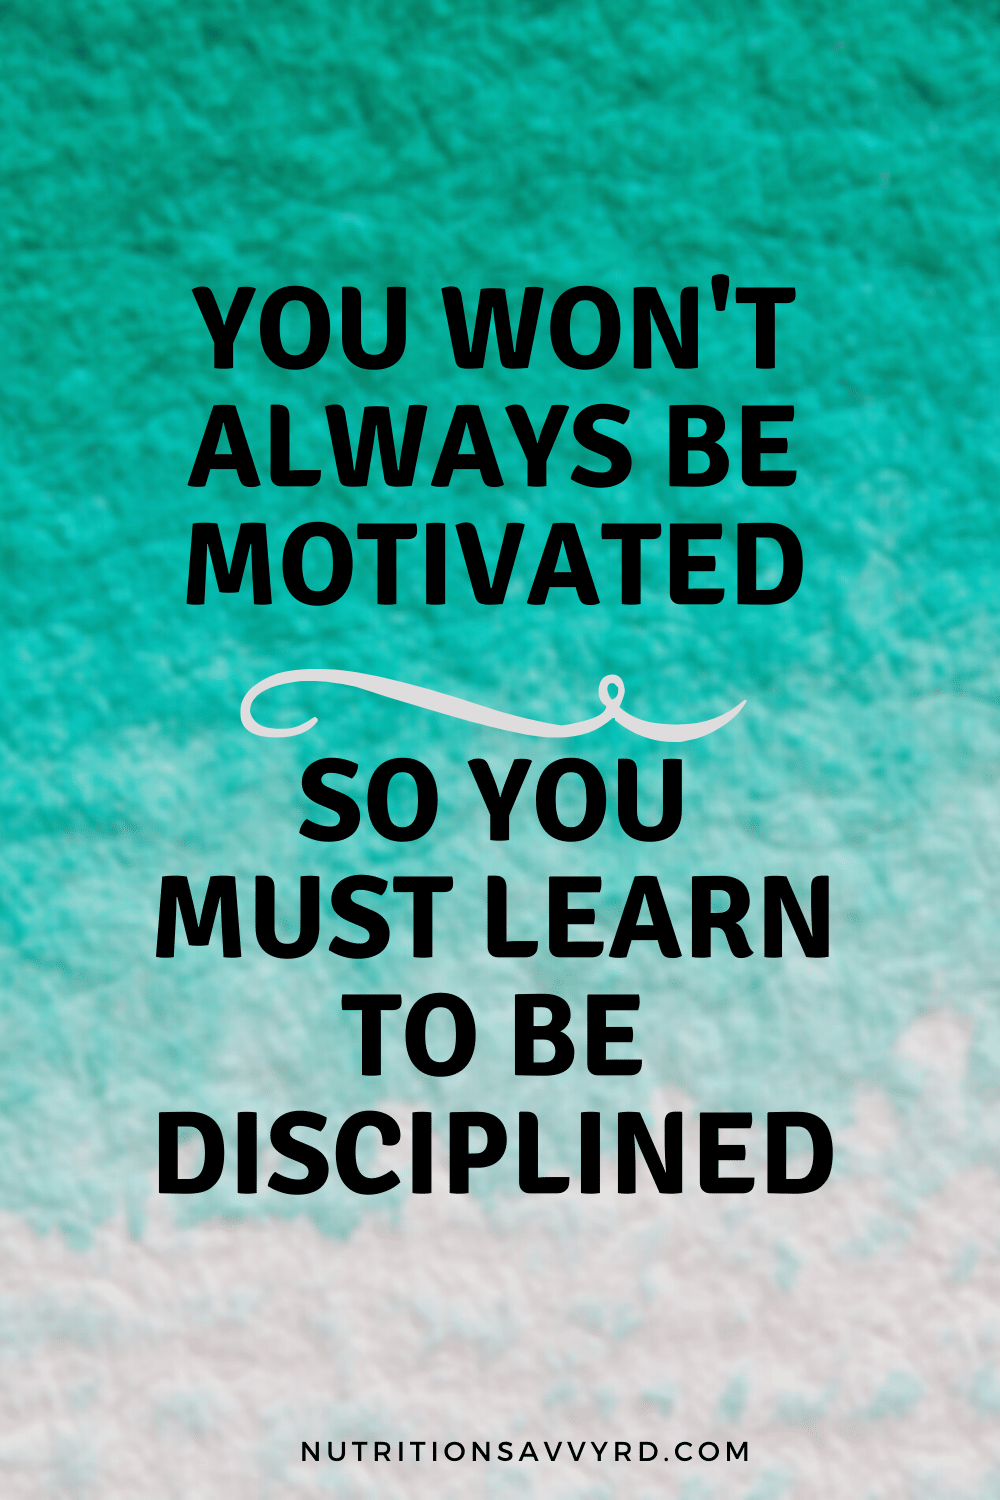 you won't always be motivated so you must learn to be disciplined